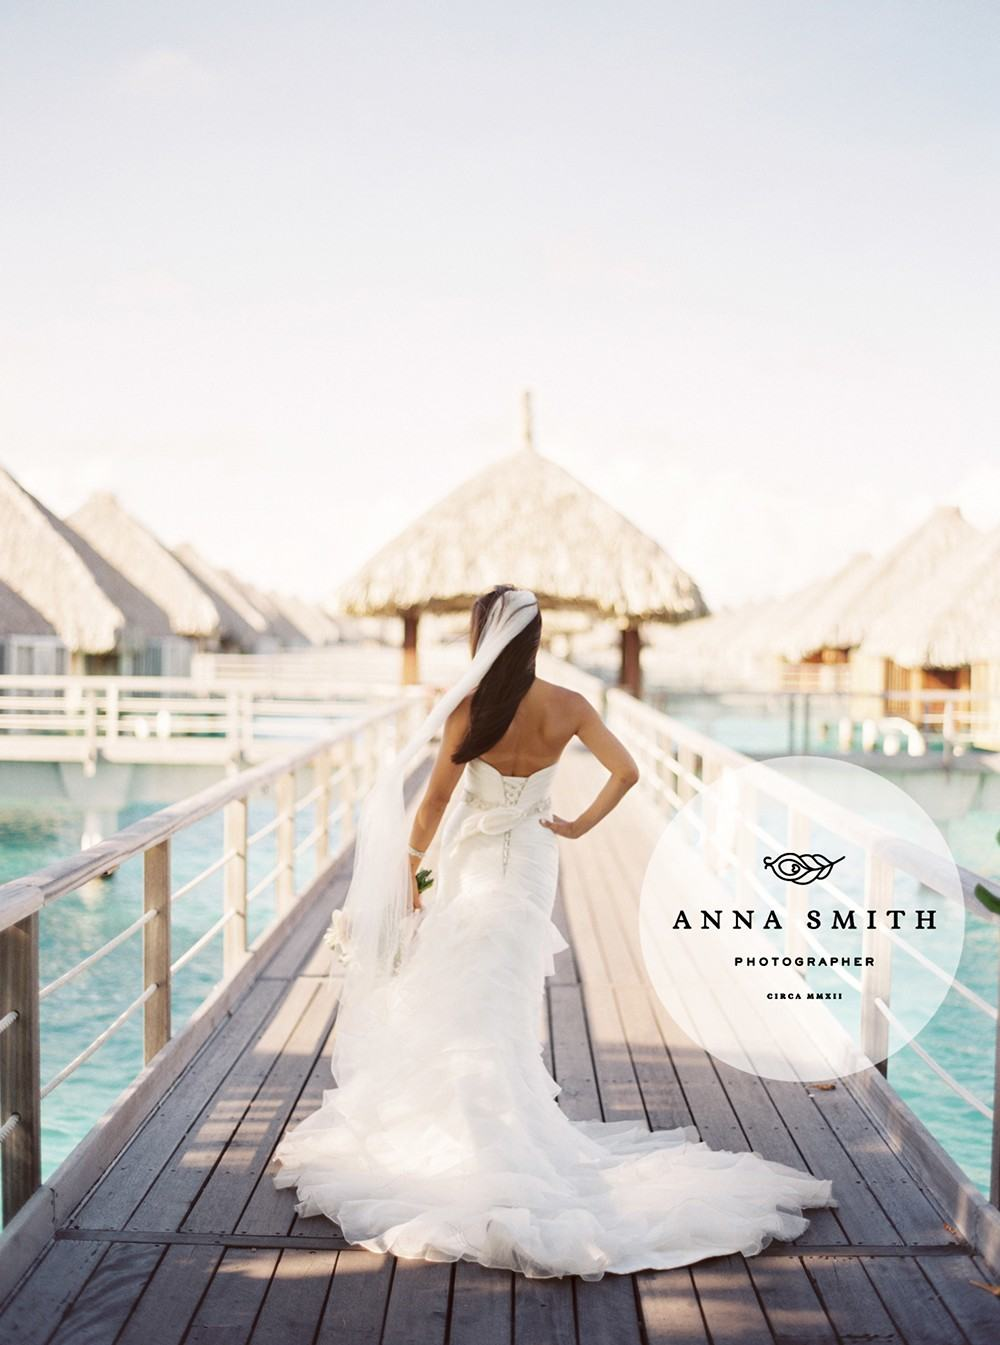 St Regis Bora Bora - Anna Smith Photography - Destionation Wedding Photographer Based in Dallas, Texas - Destination Weddings and Lifestyle20